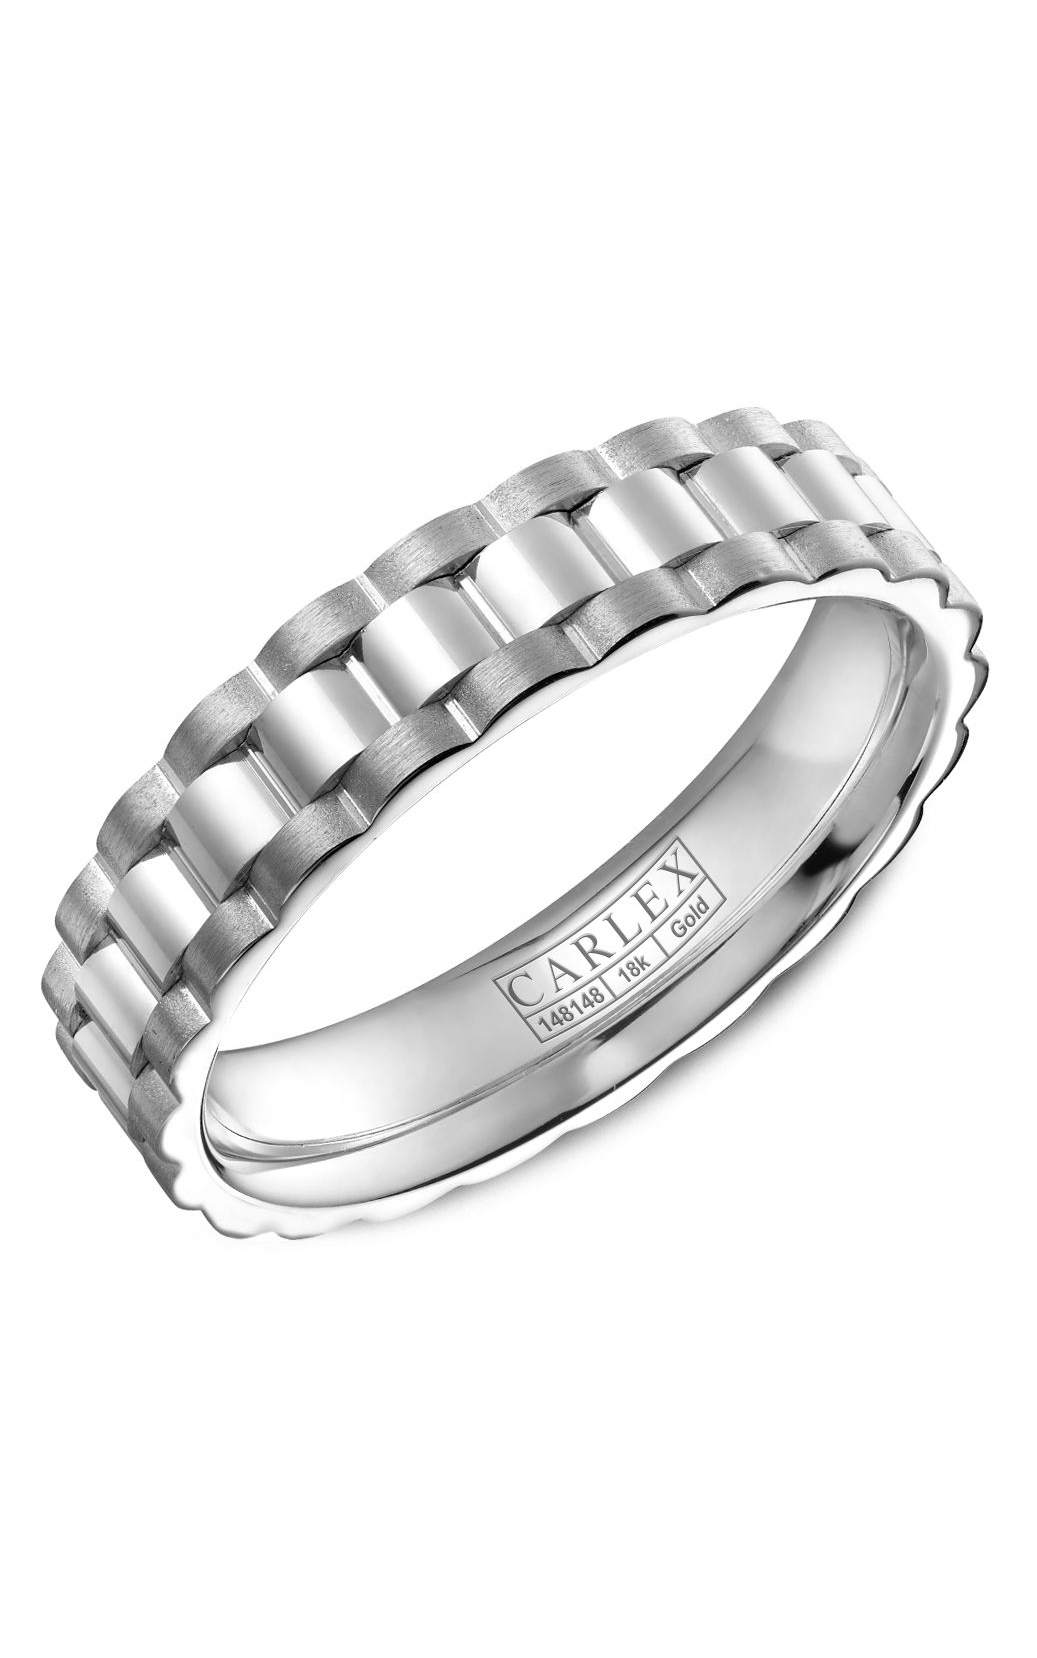 Carlex G3 Men's Wedding Band CX3-0002WW product image